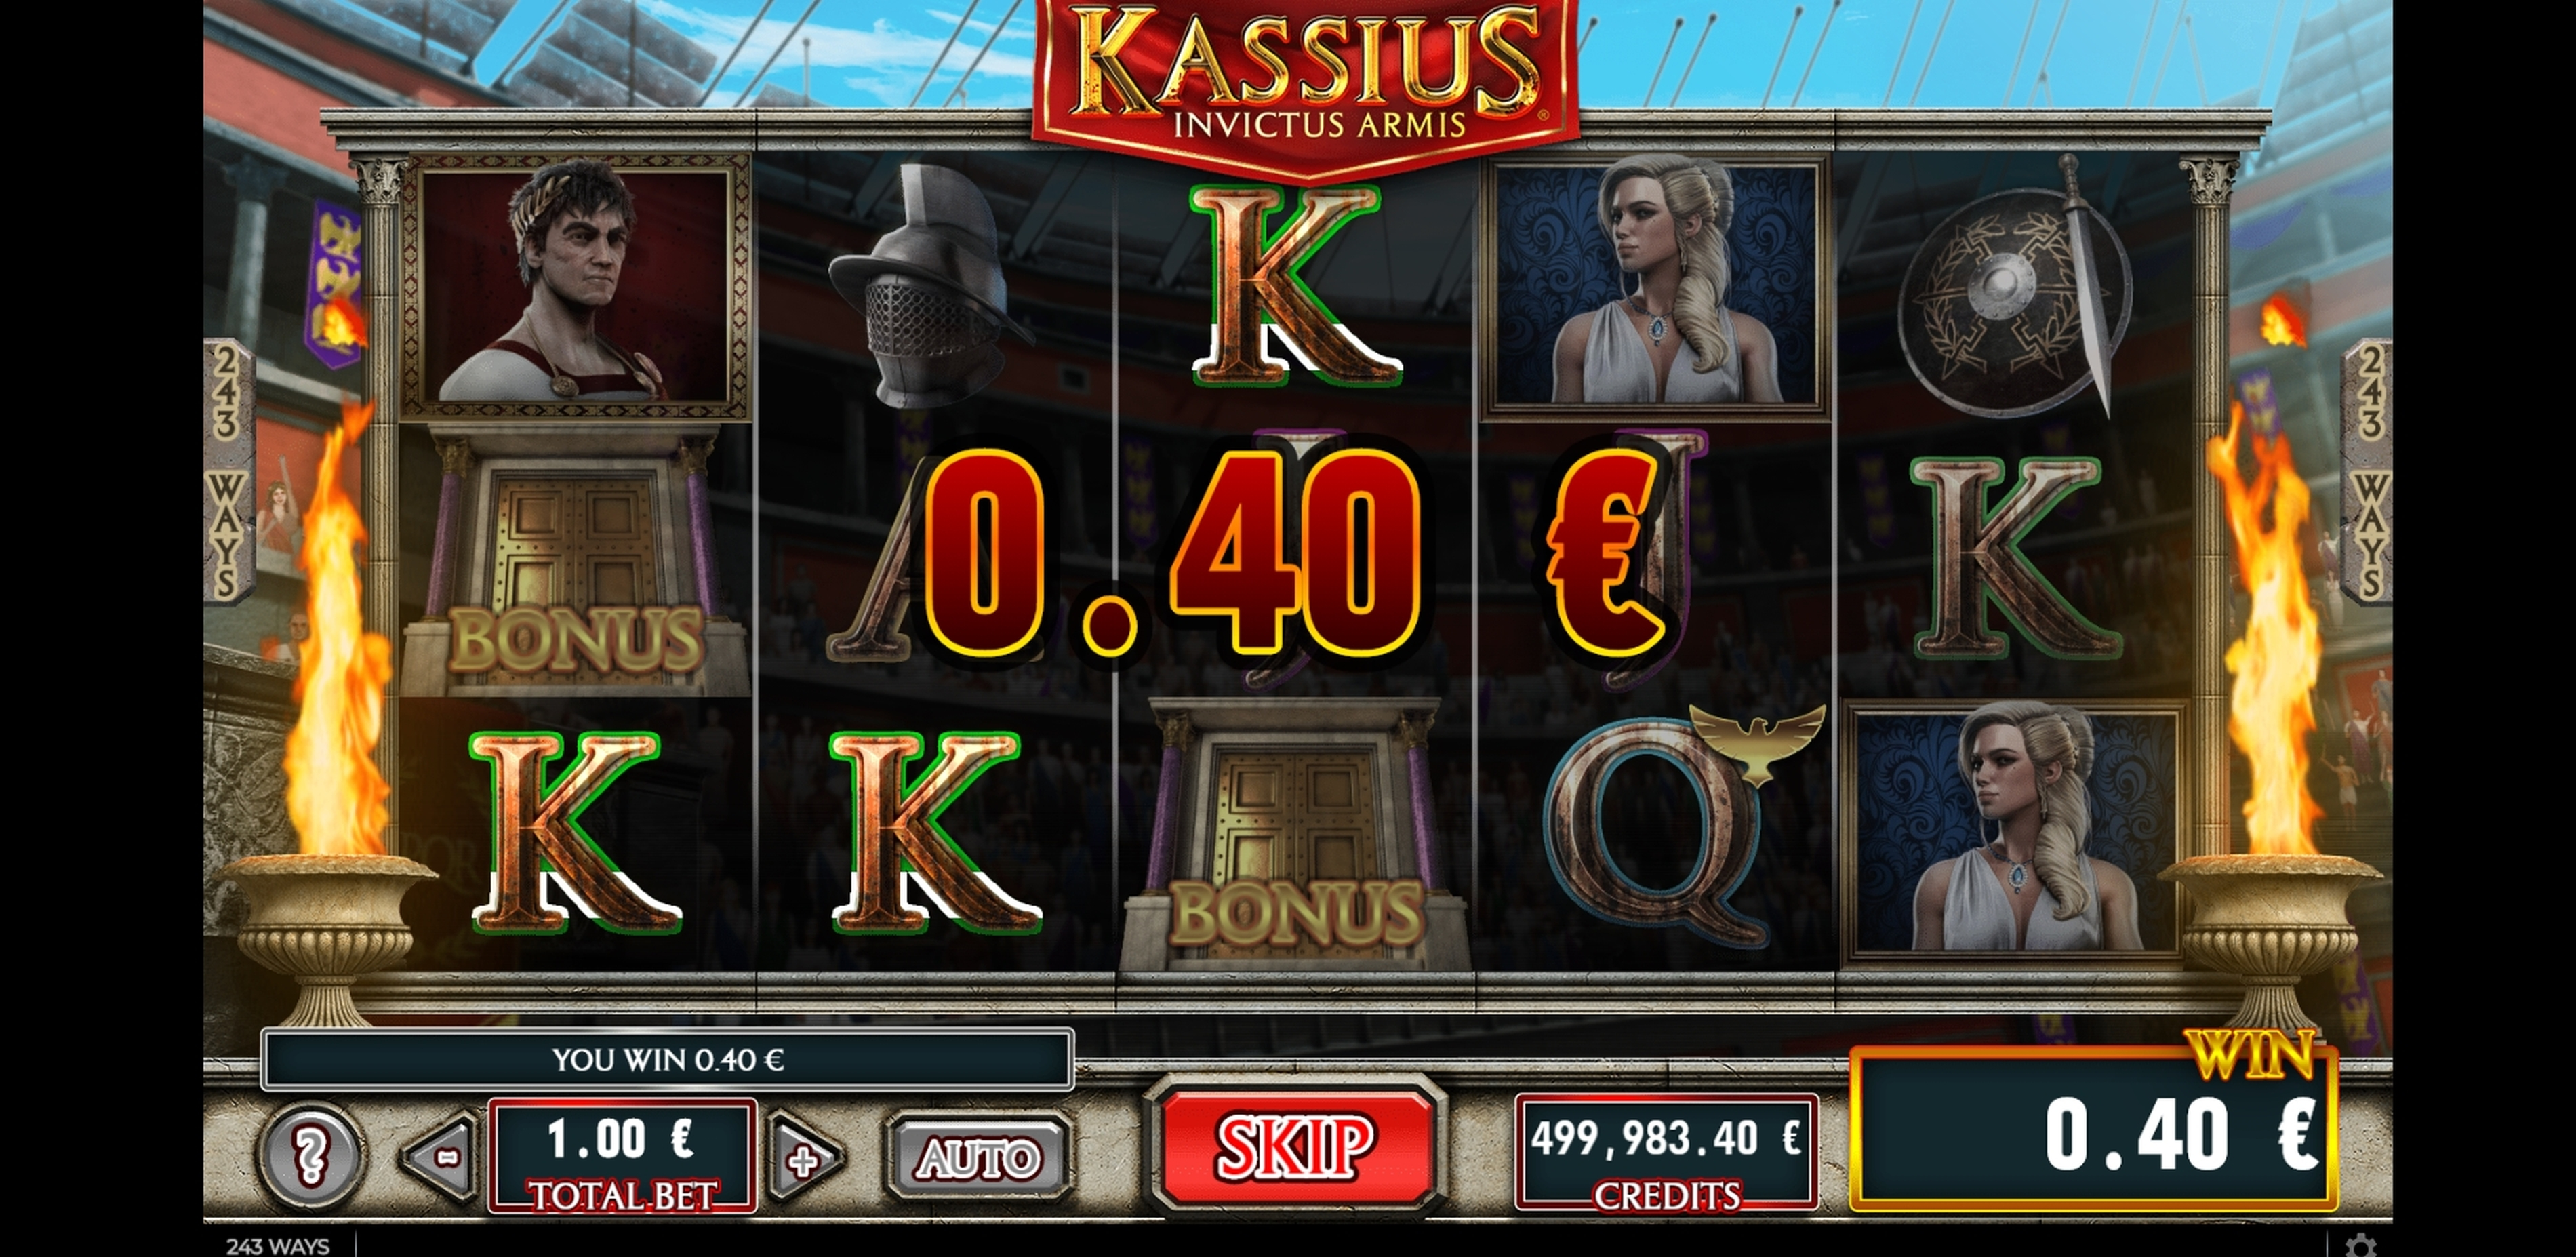 Win Money in Kassius Invictus Armis Free Slot Game by GAMING1